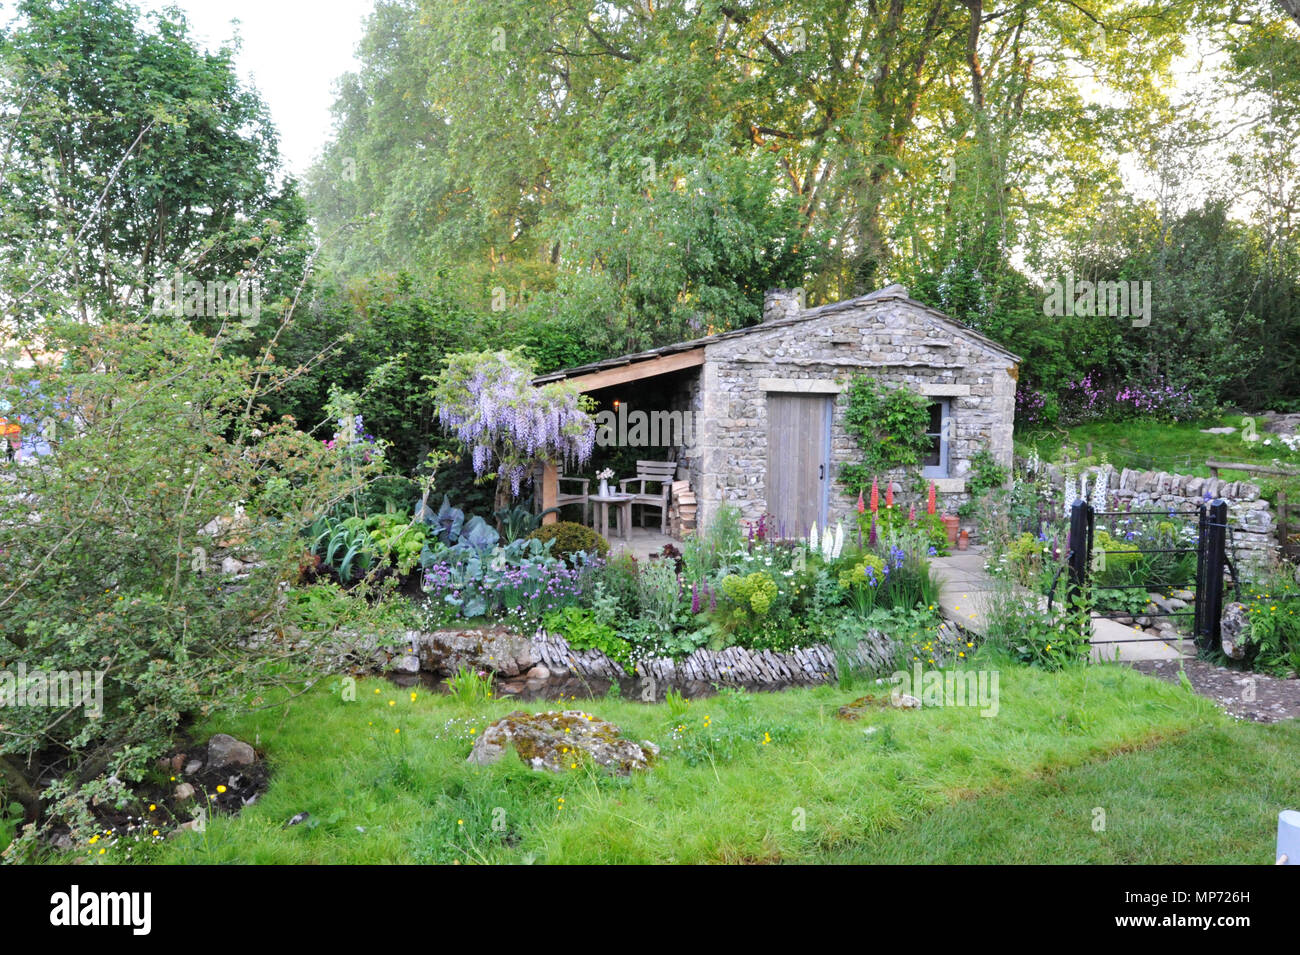 London, UK. 21st May 2018. The Welcome to Yorkshire Garden (designed by Mark Gregory), one of the beautiful and elegant show gardens on display at the 2018 RHS Chelsea Flower Show which opened today in the 11-acre grounds of the Royal Hospital Chelsea, London, United Kingdom.   Credit: Michael Preston/Alamy Live News - Stock Image